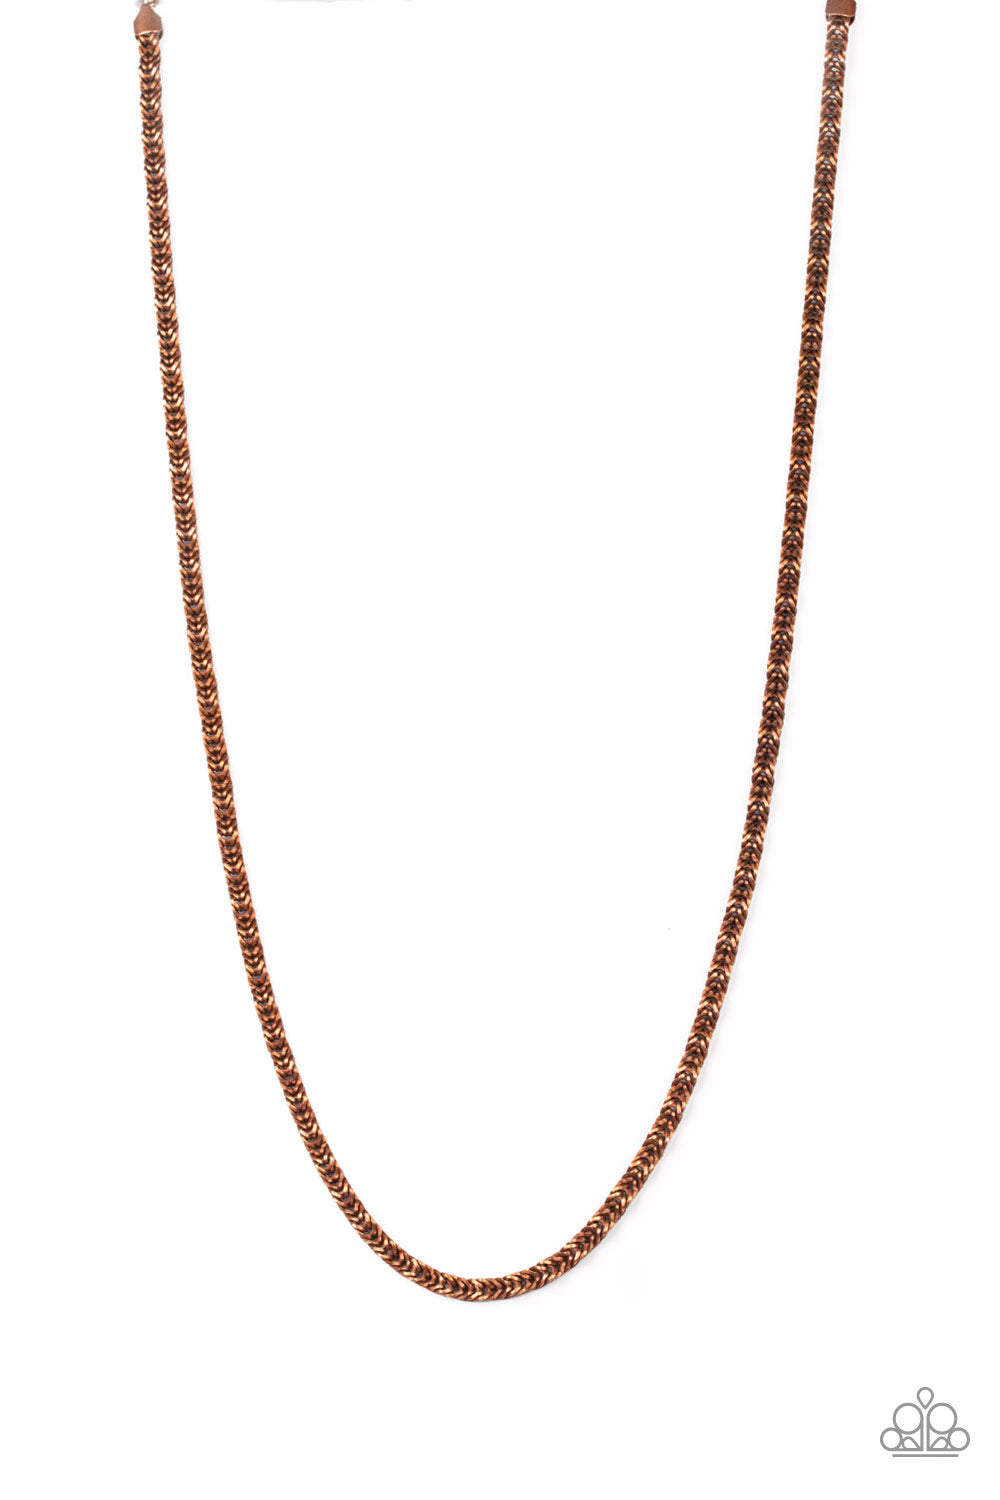 Paparazzi Accessories - Go Down Fighting - Copper Necklace